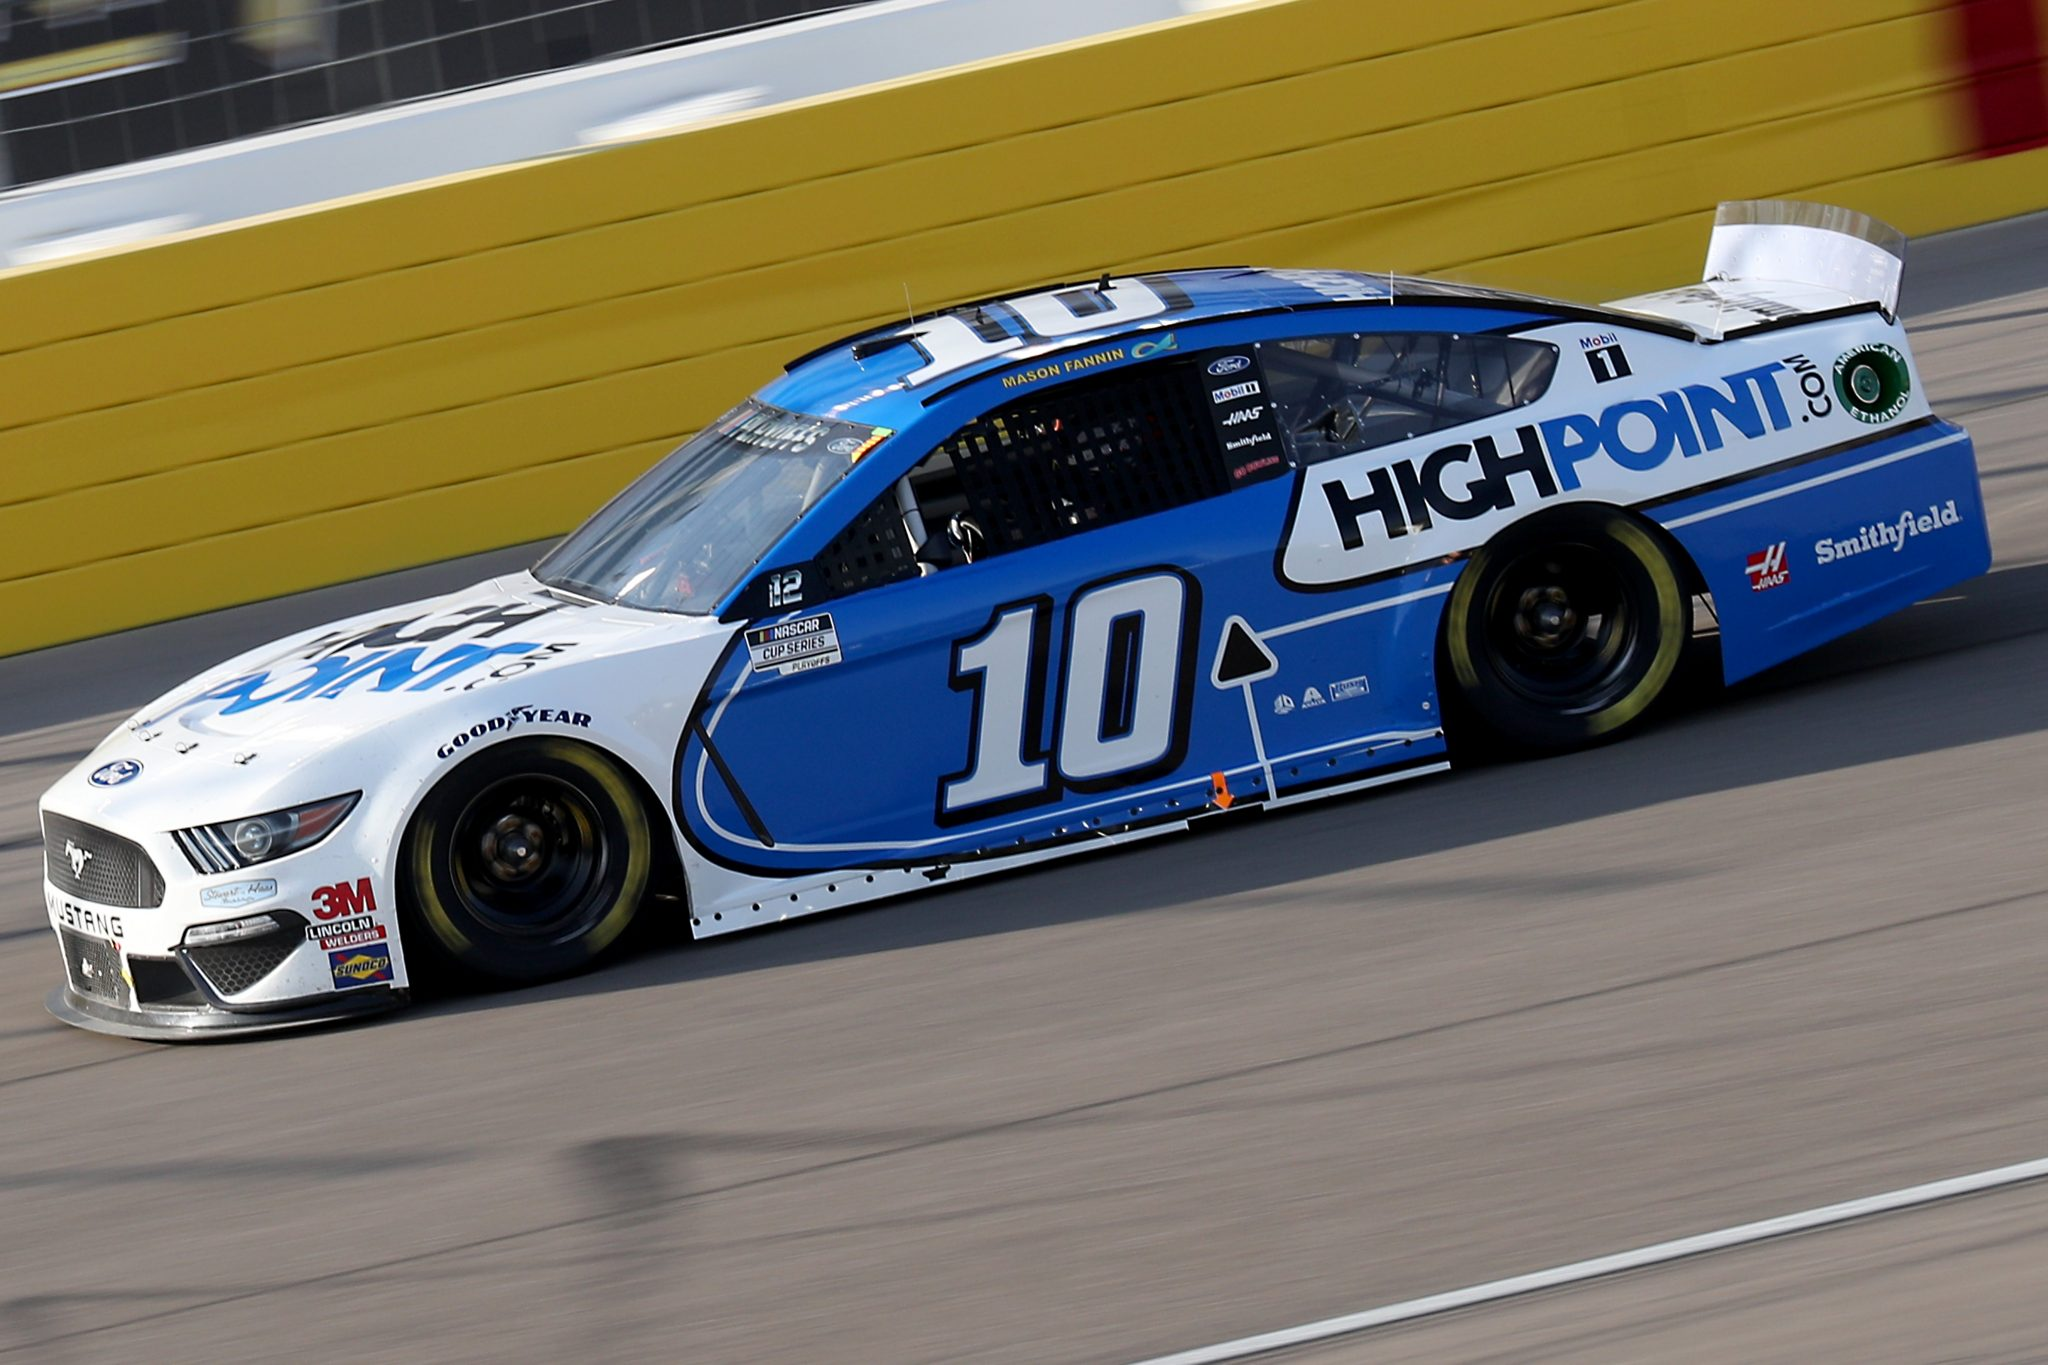 LAS VEGAS, NEVADA - SEPTEMBER 27: Aric Almirola, driver of the #10 HighPoint.com Ford, drives during the NASCAR Cup Series South Point 400 at Las Vegas Motor Speedway on September 27, 2020 in Las Vegas, Nevada. (Photo by Chris Graythen/Getty Images) | Getty Images